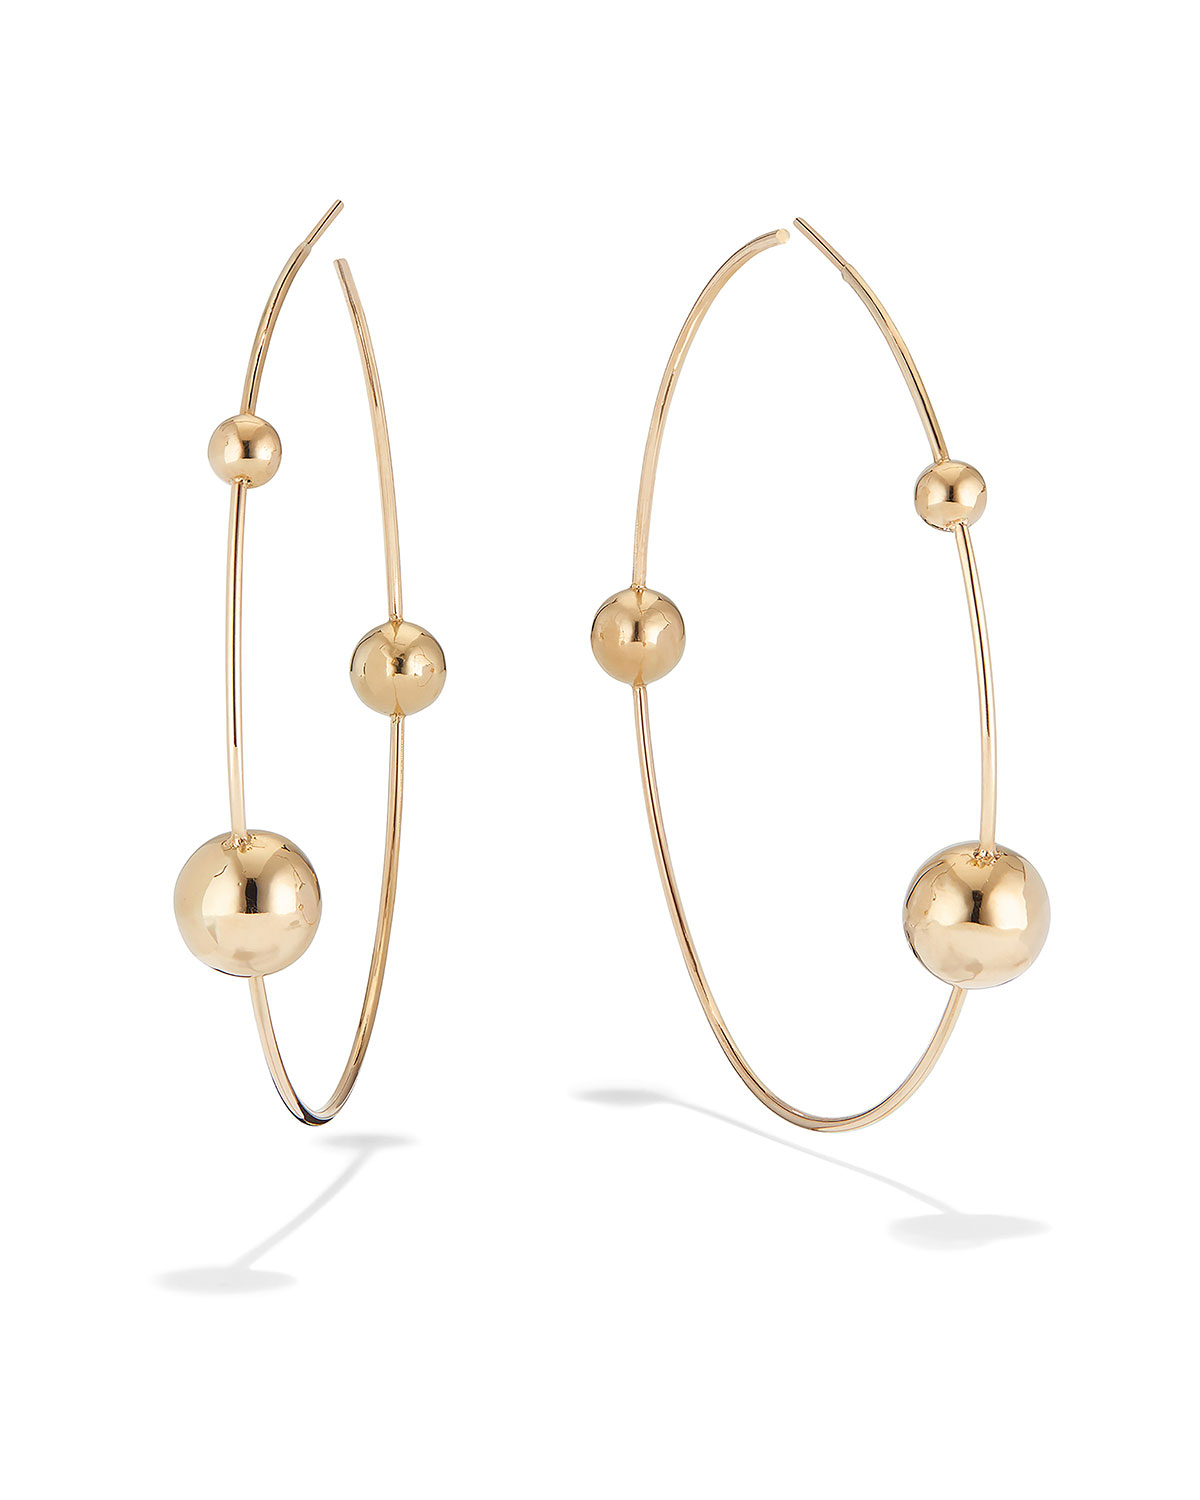 Lana 14K GOLD 3-BEAD HOOP EARRINGS